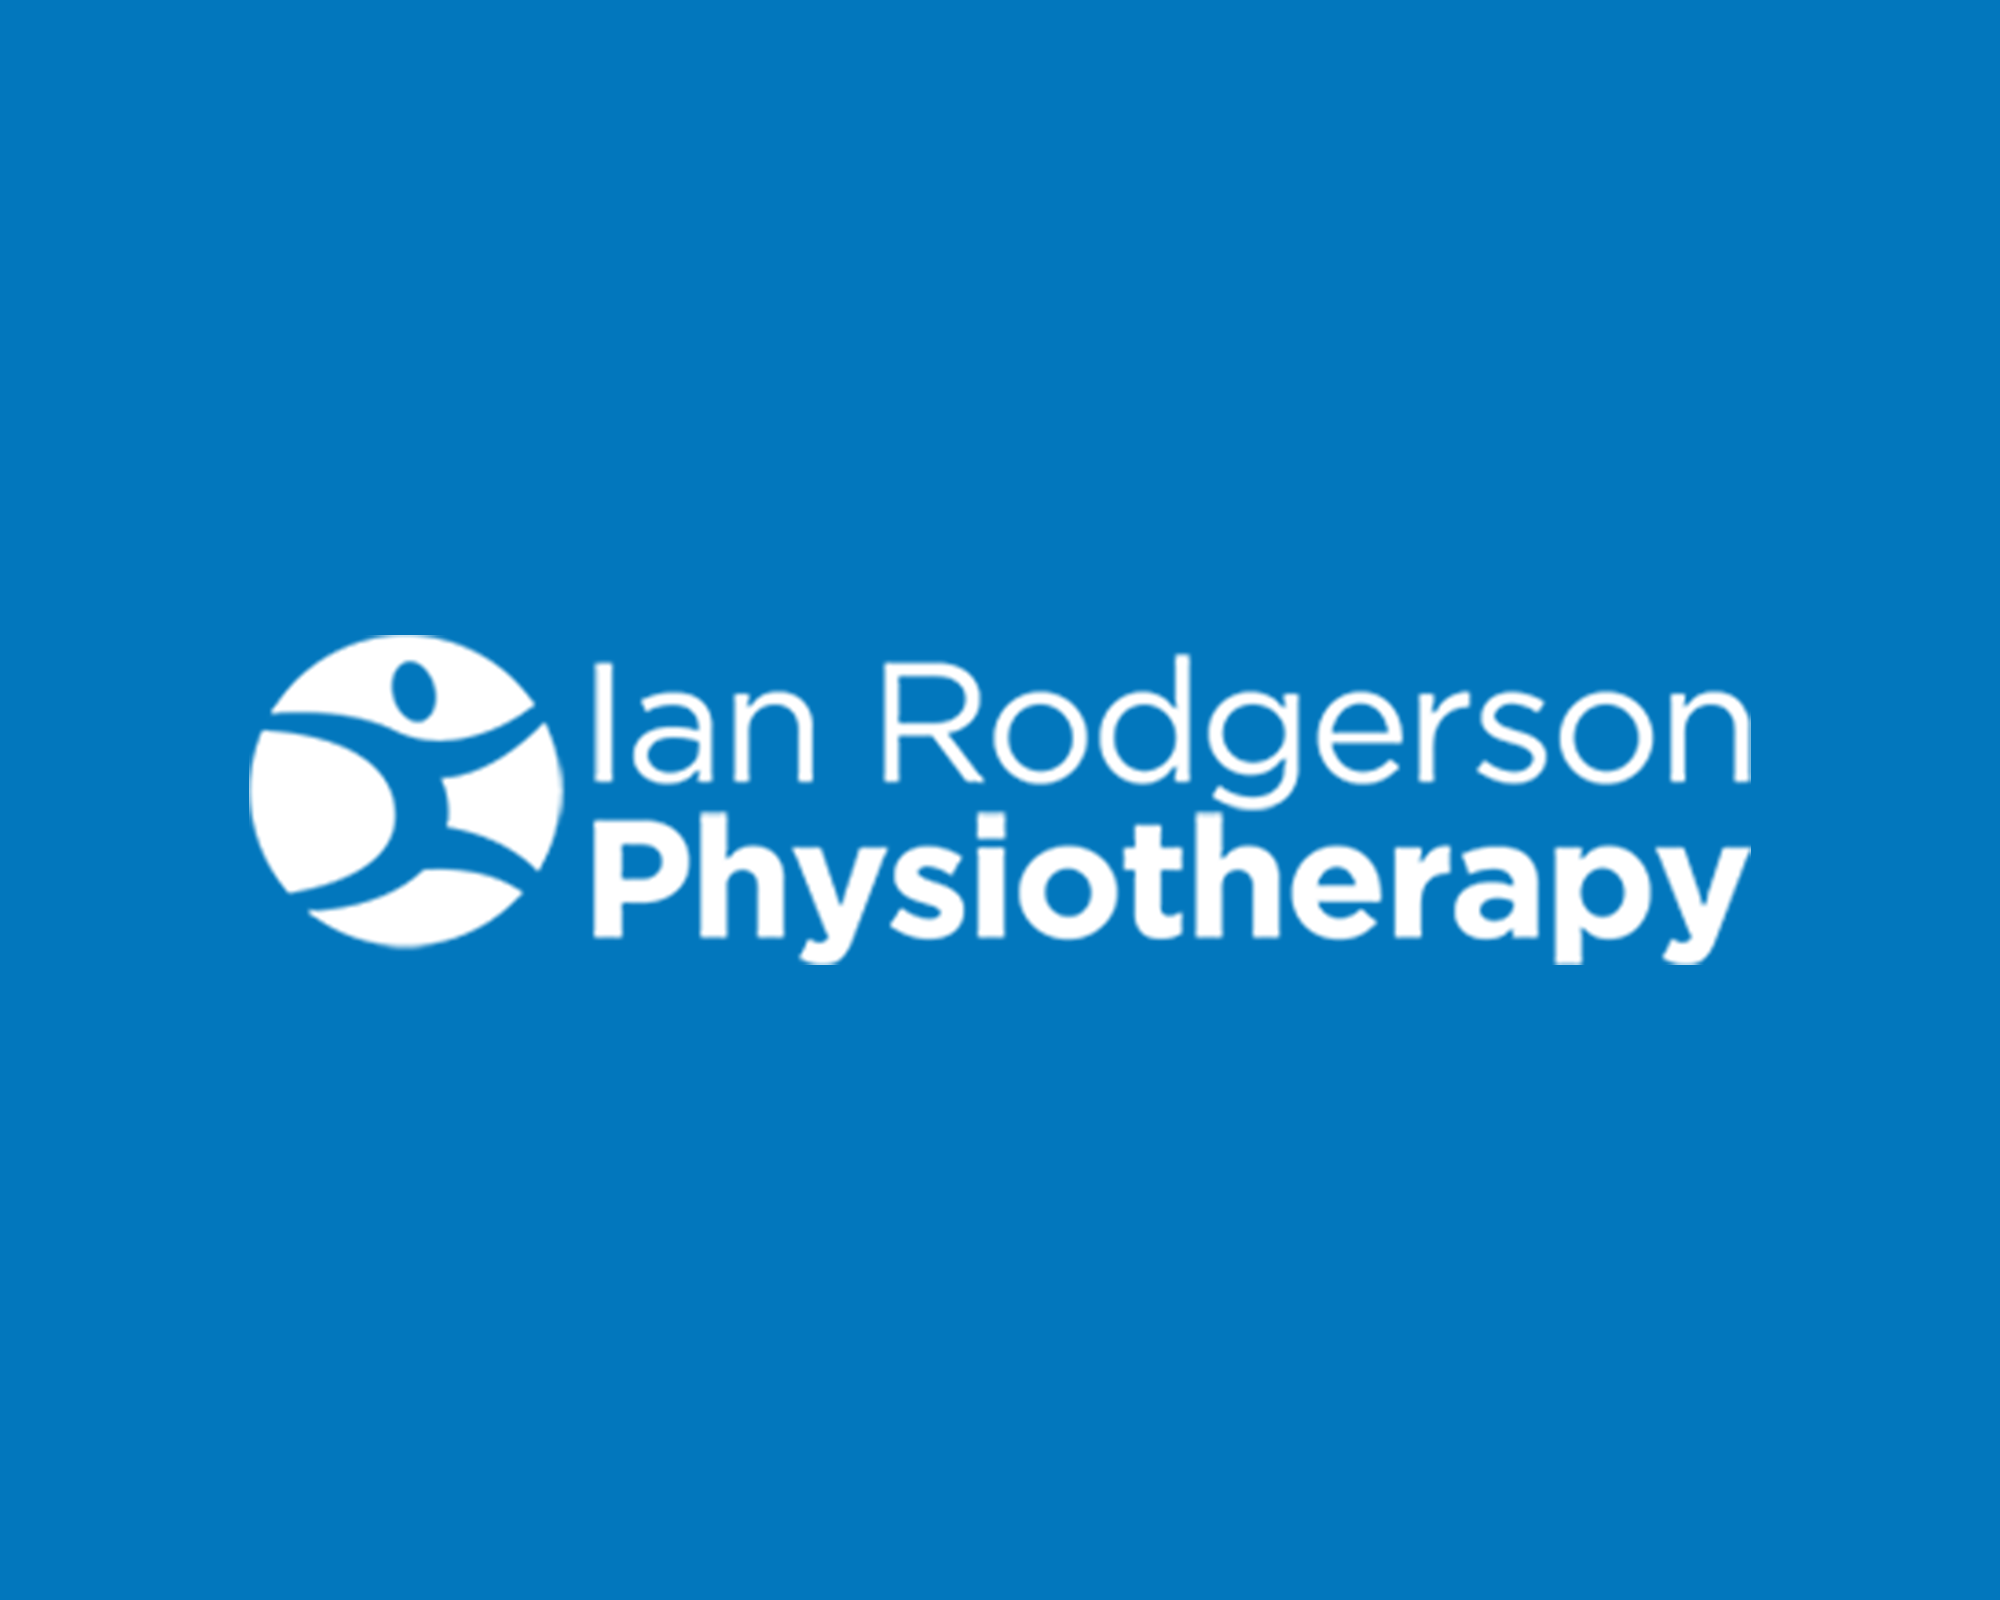 ian rodgerson physiotherapy Logo